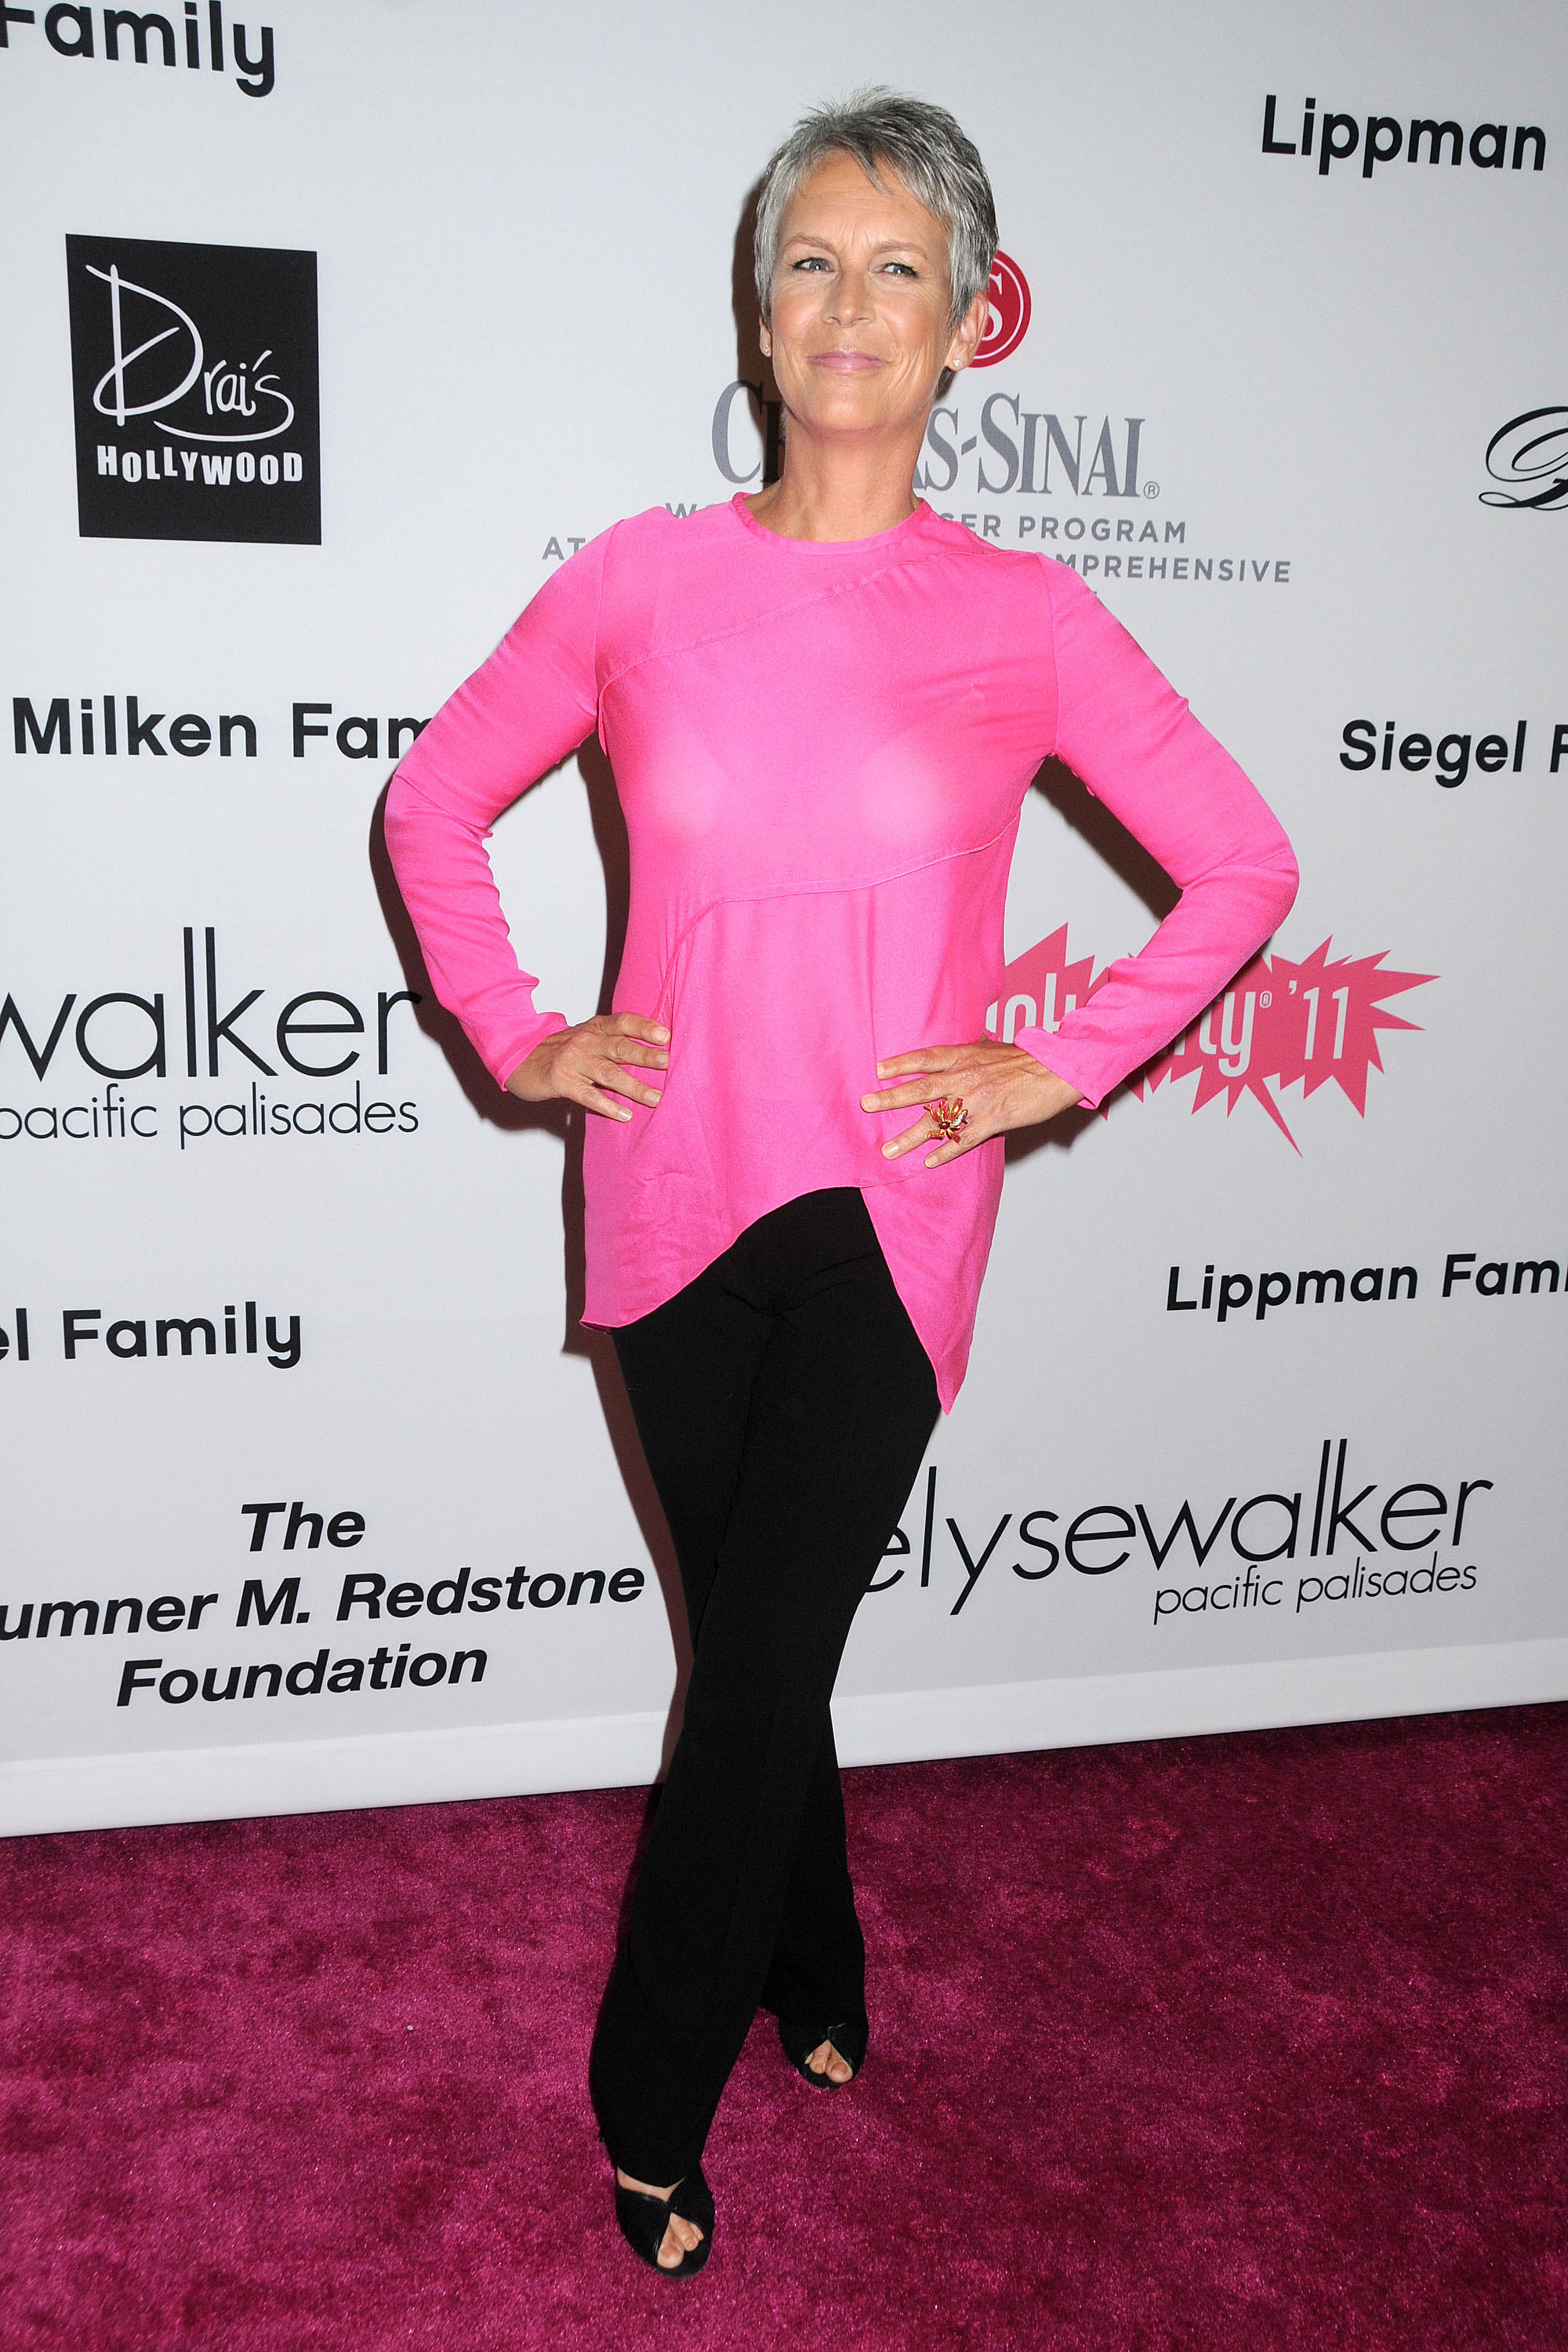 7th Annual rose Party in Los Angeles